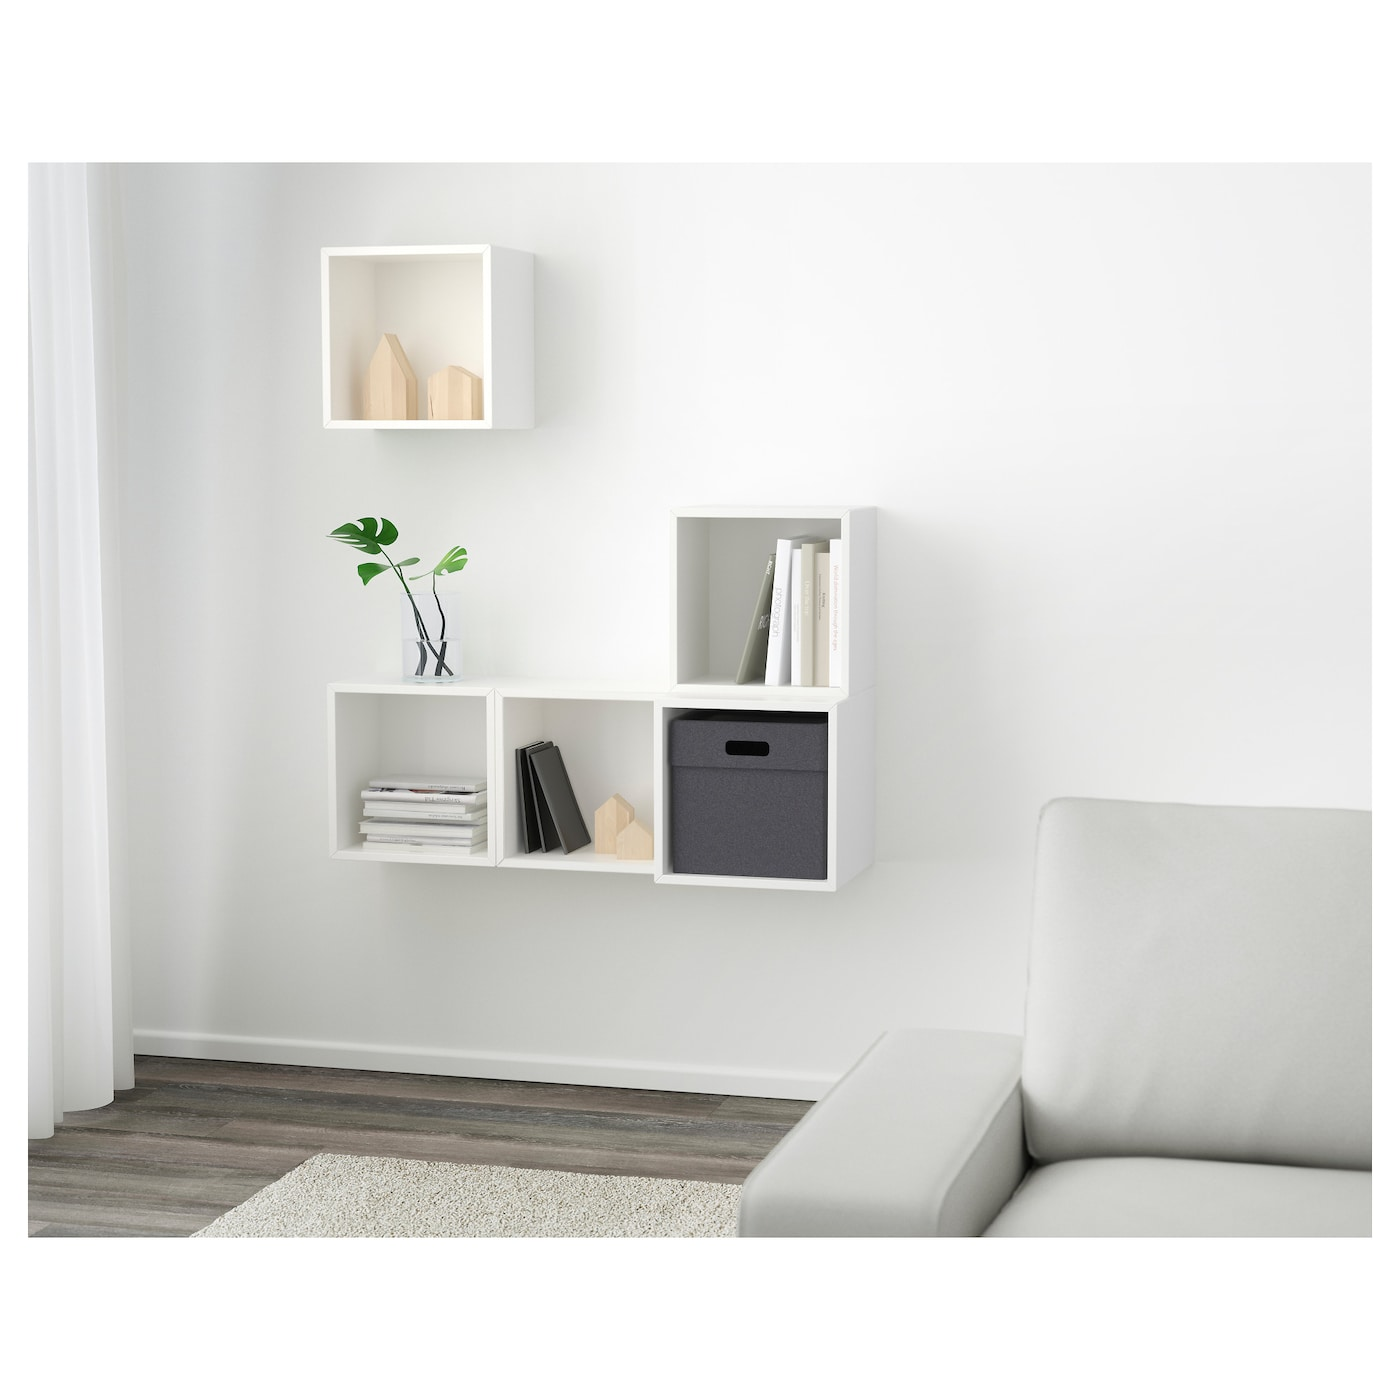 Attirant EKET Wall Mounted Cabinet Bination White 105x35x120 Cm IKEA